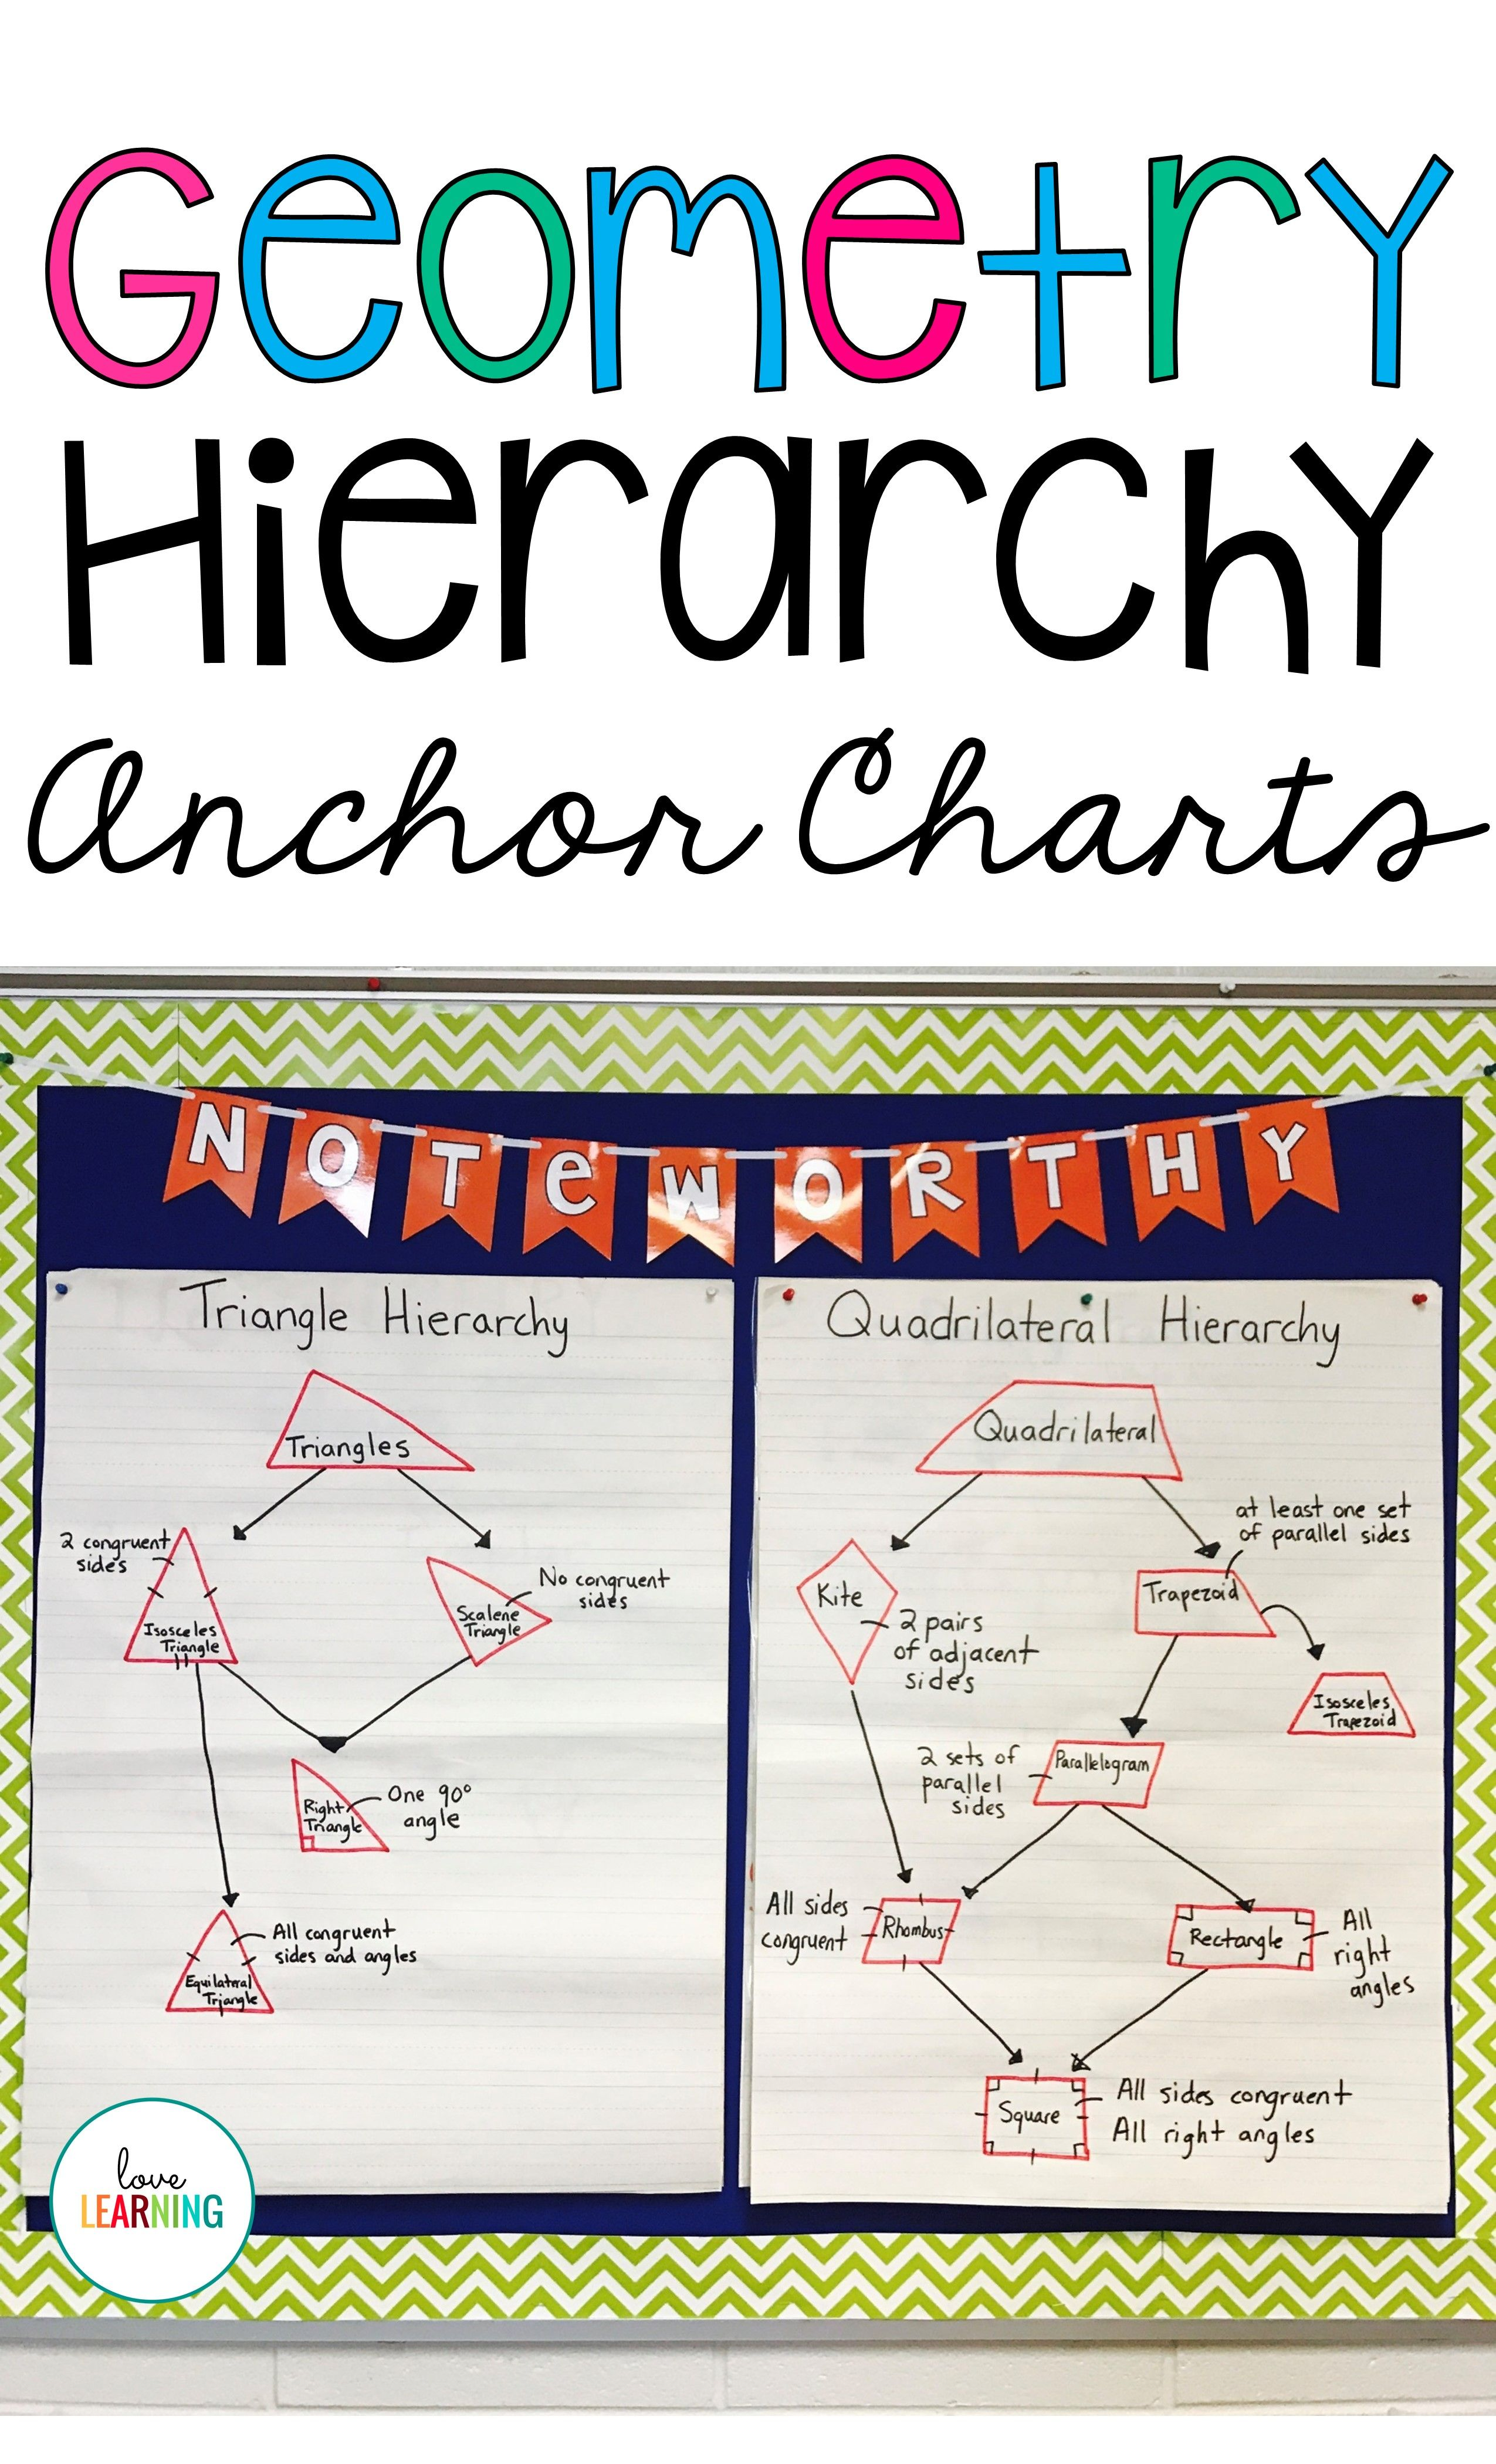 Geometry Hierarchy Sort (Includes 6 different Hierarchies)